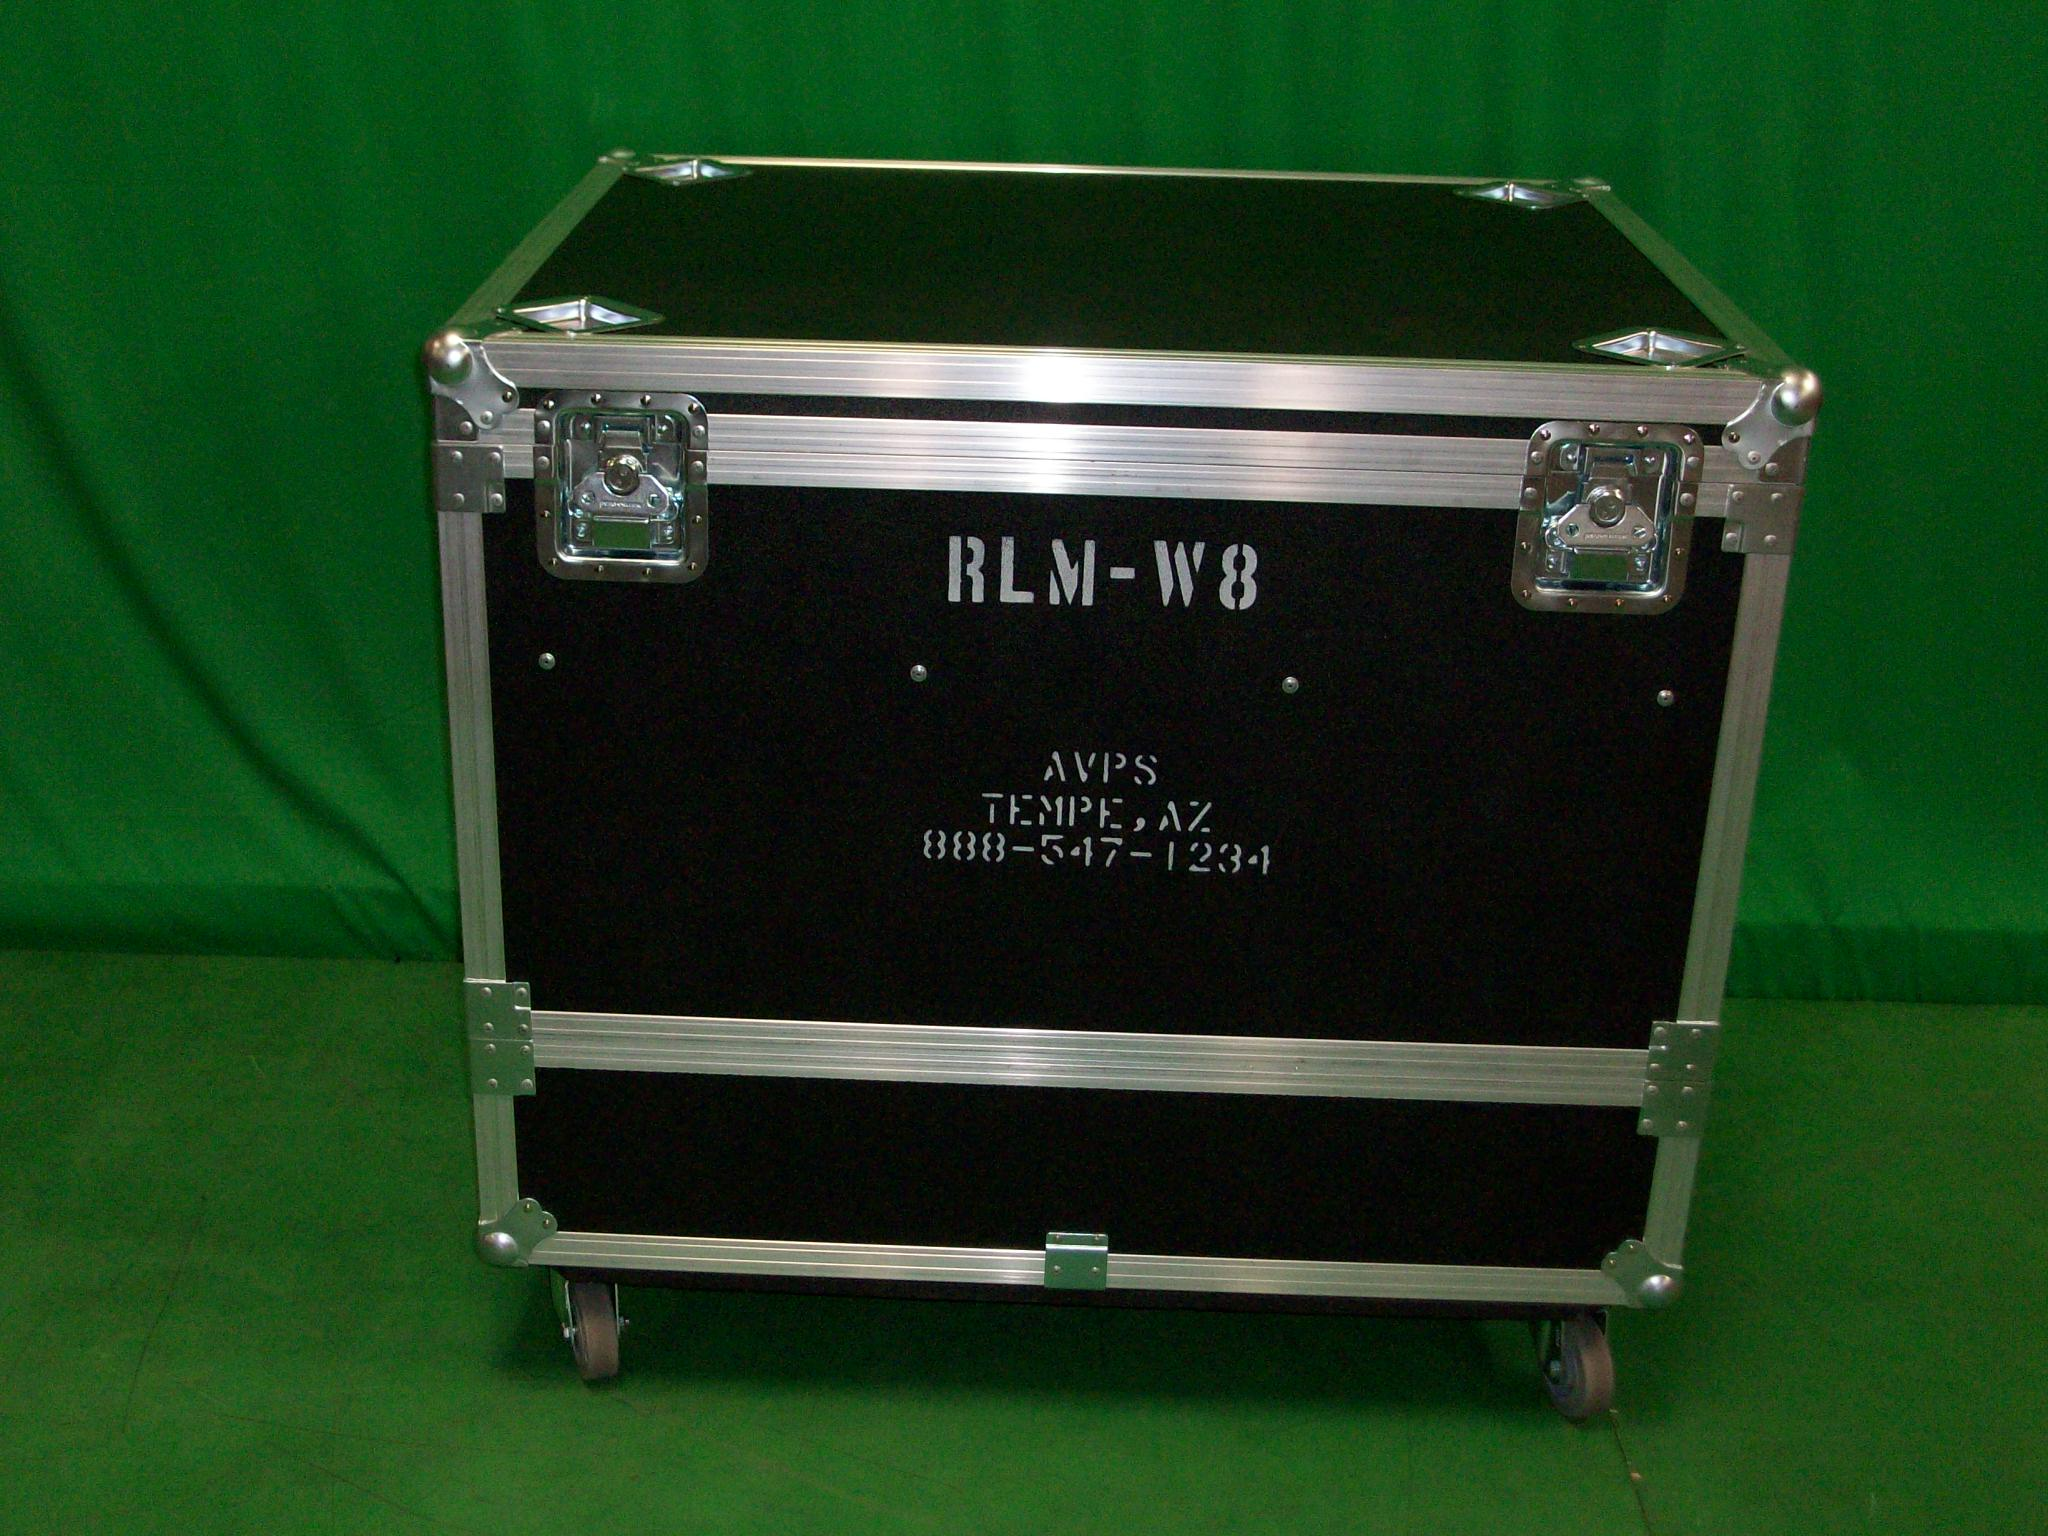 Print # 6437 - Custom Case for (1) Barco RLM Projector w/ Fly Cage By Nelson Case Corp